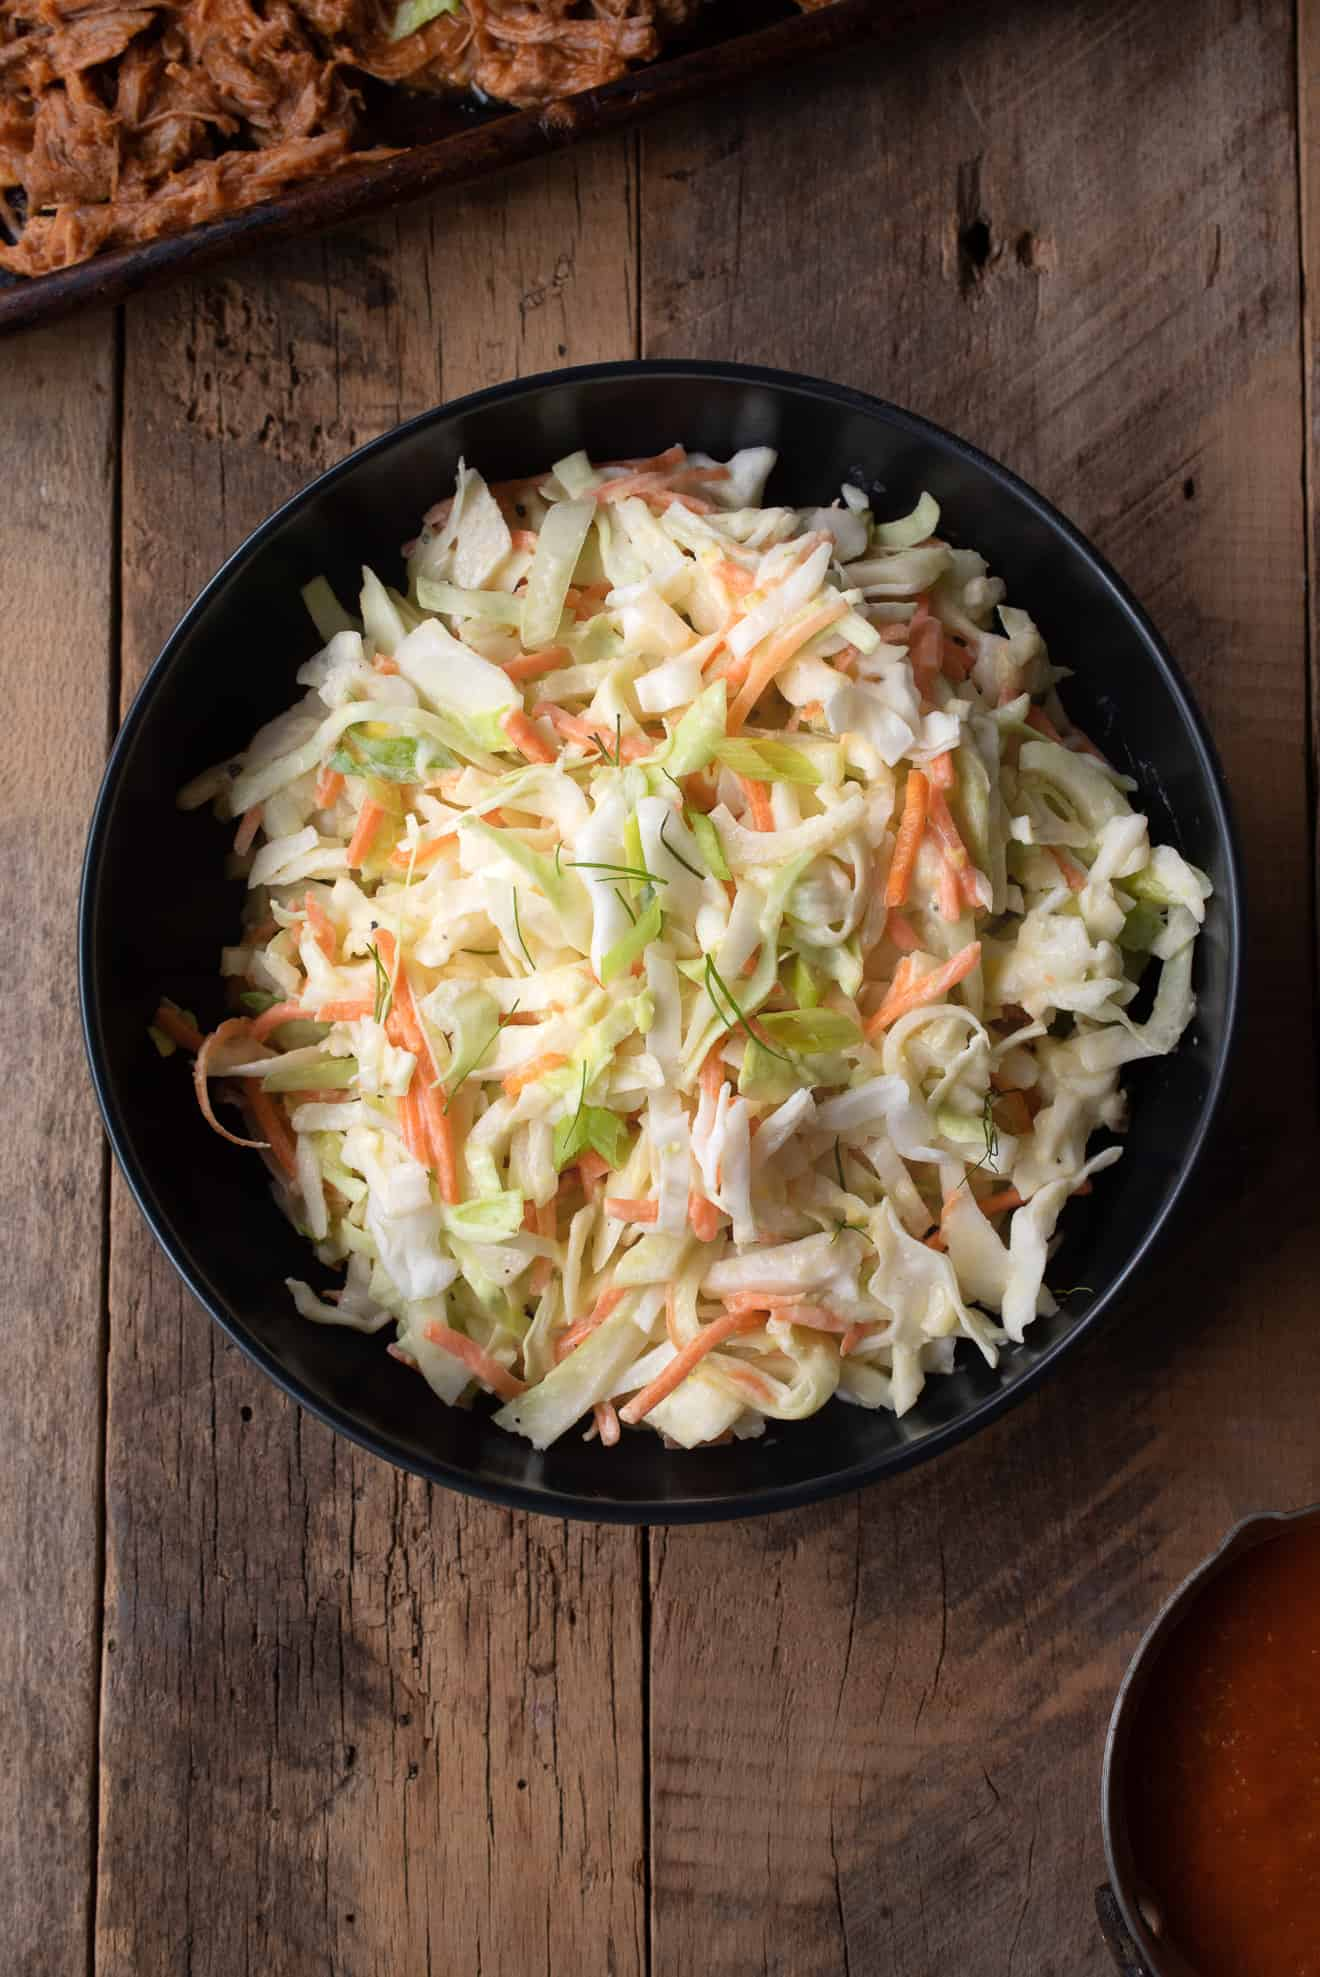 Crunchy vegetable coleslaw from overhead